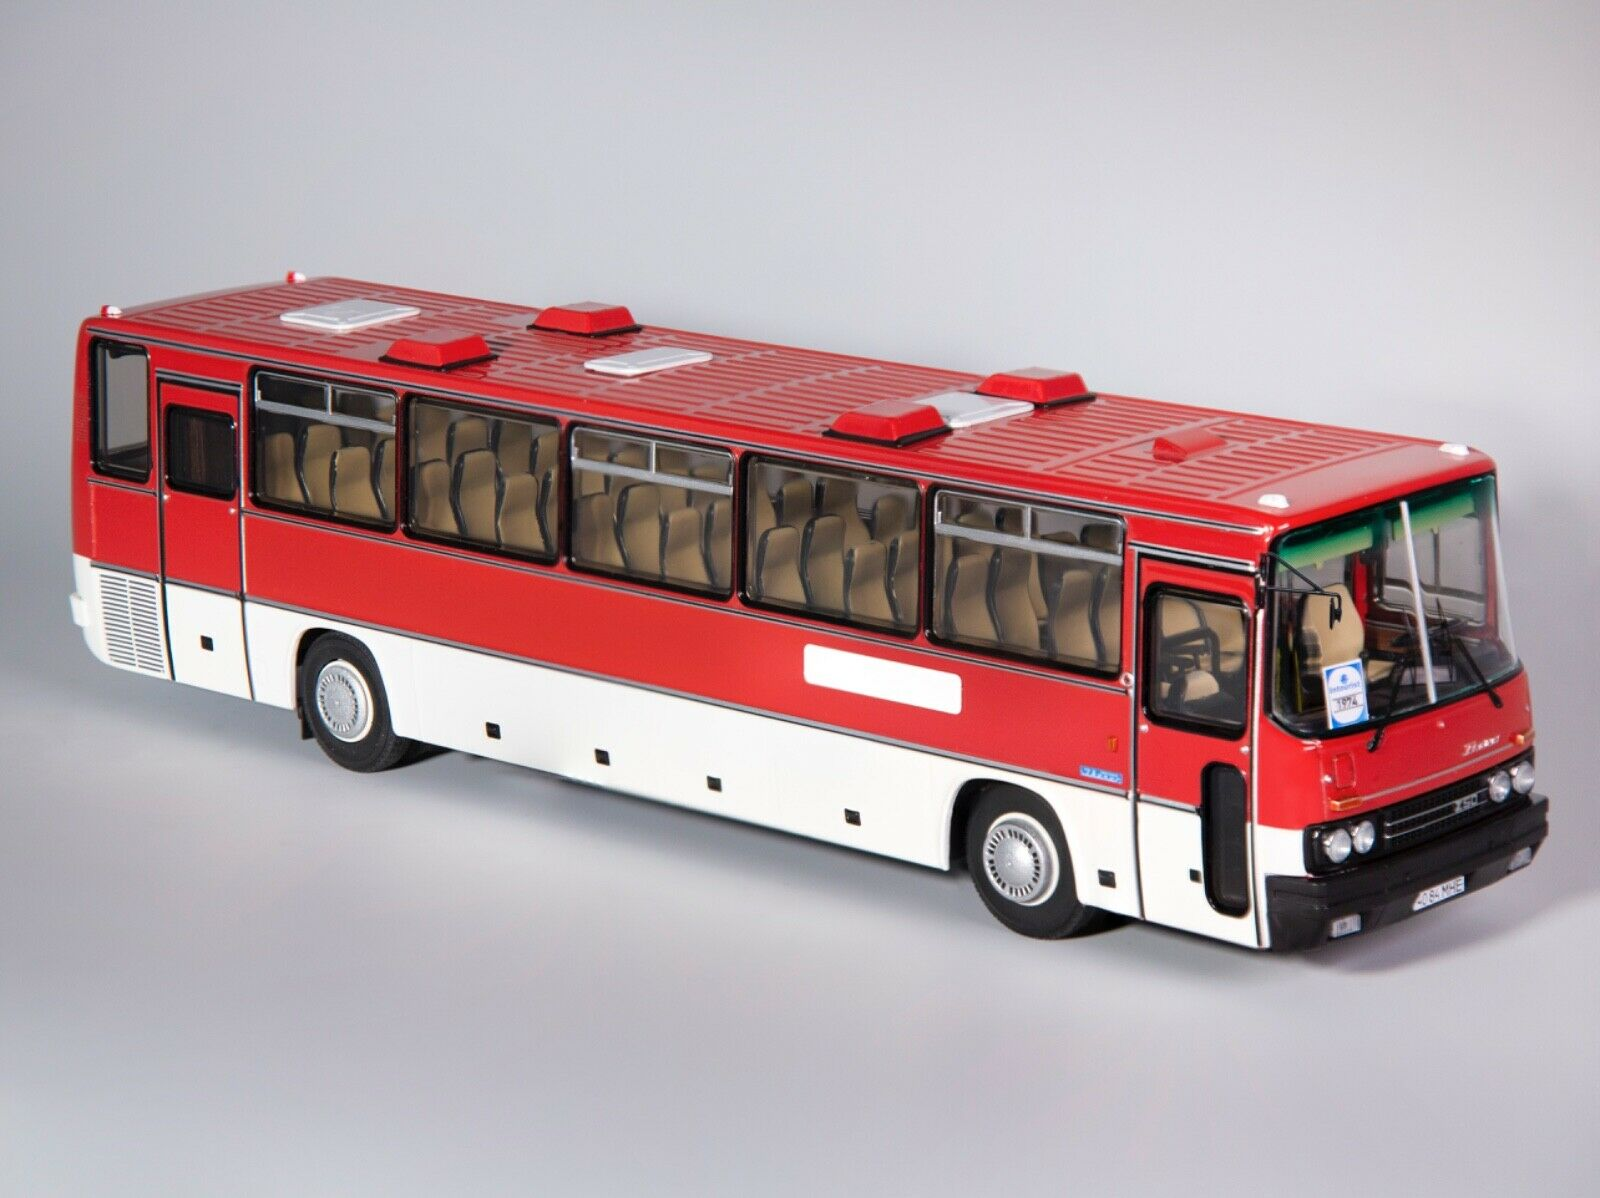 Ikarus 250.59 Intourist 1984 red white bus USSR 1 43 Classicbus very rare